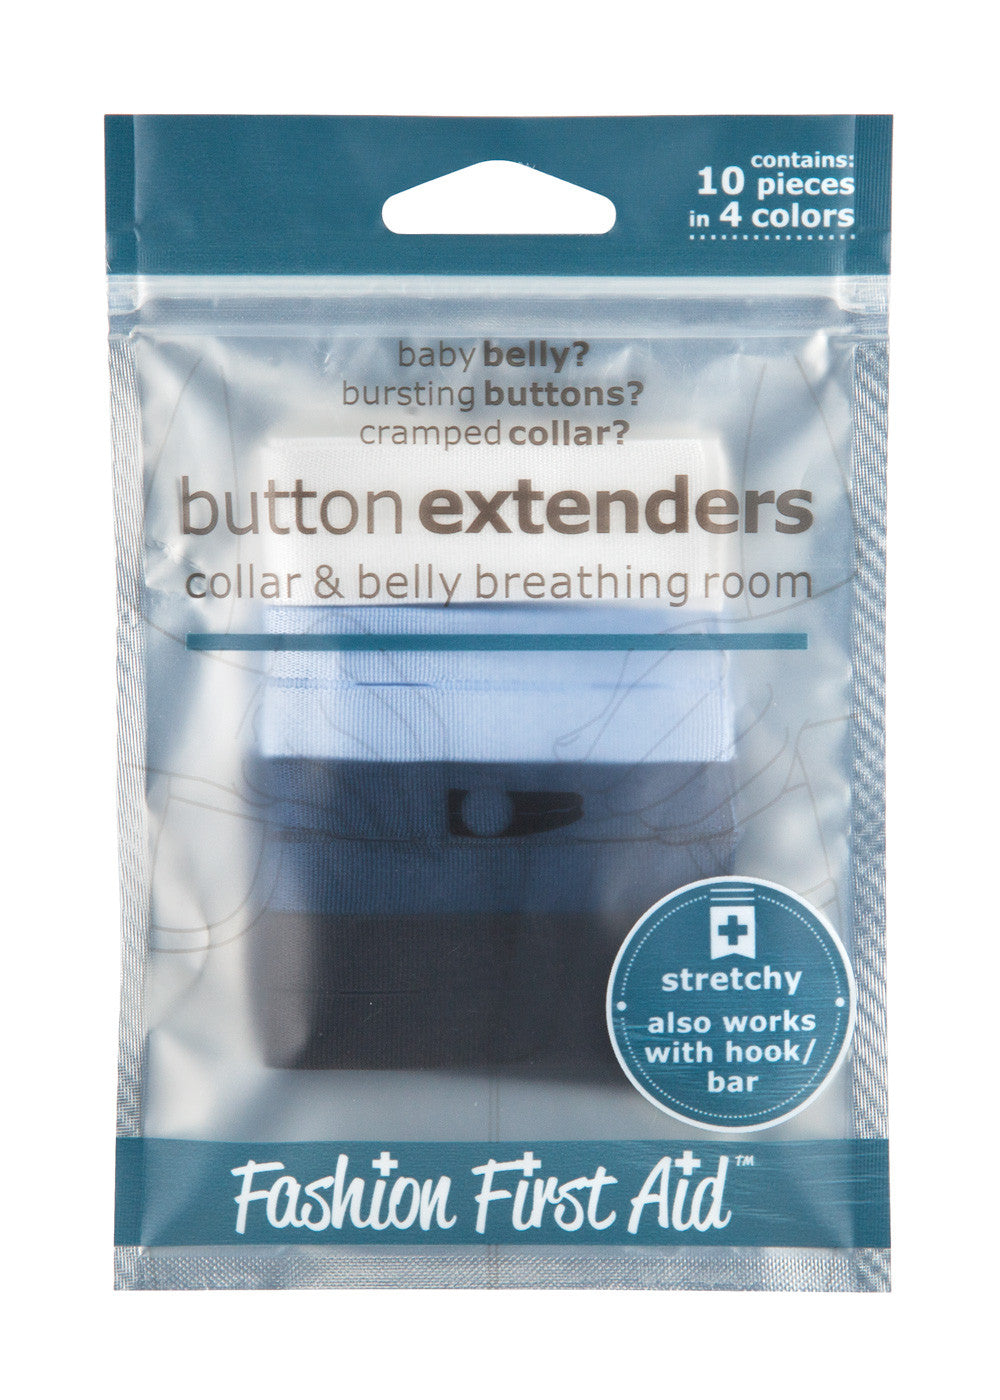 Button Extenders- Breathing room for pants and collars